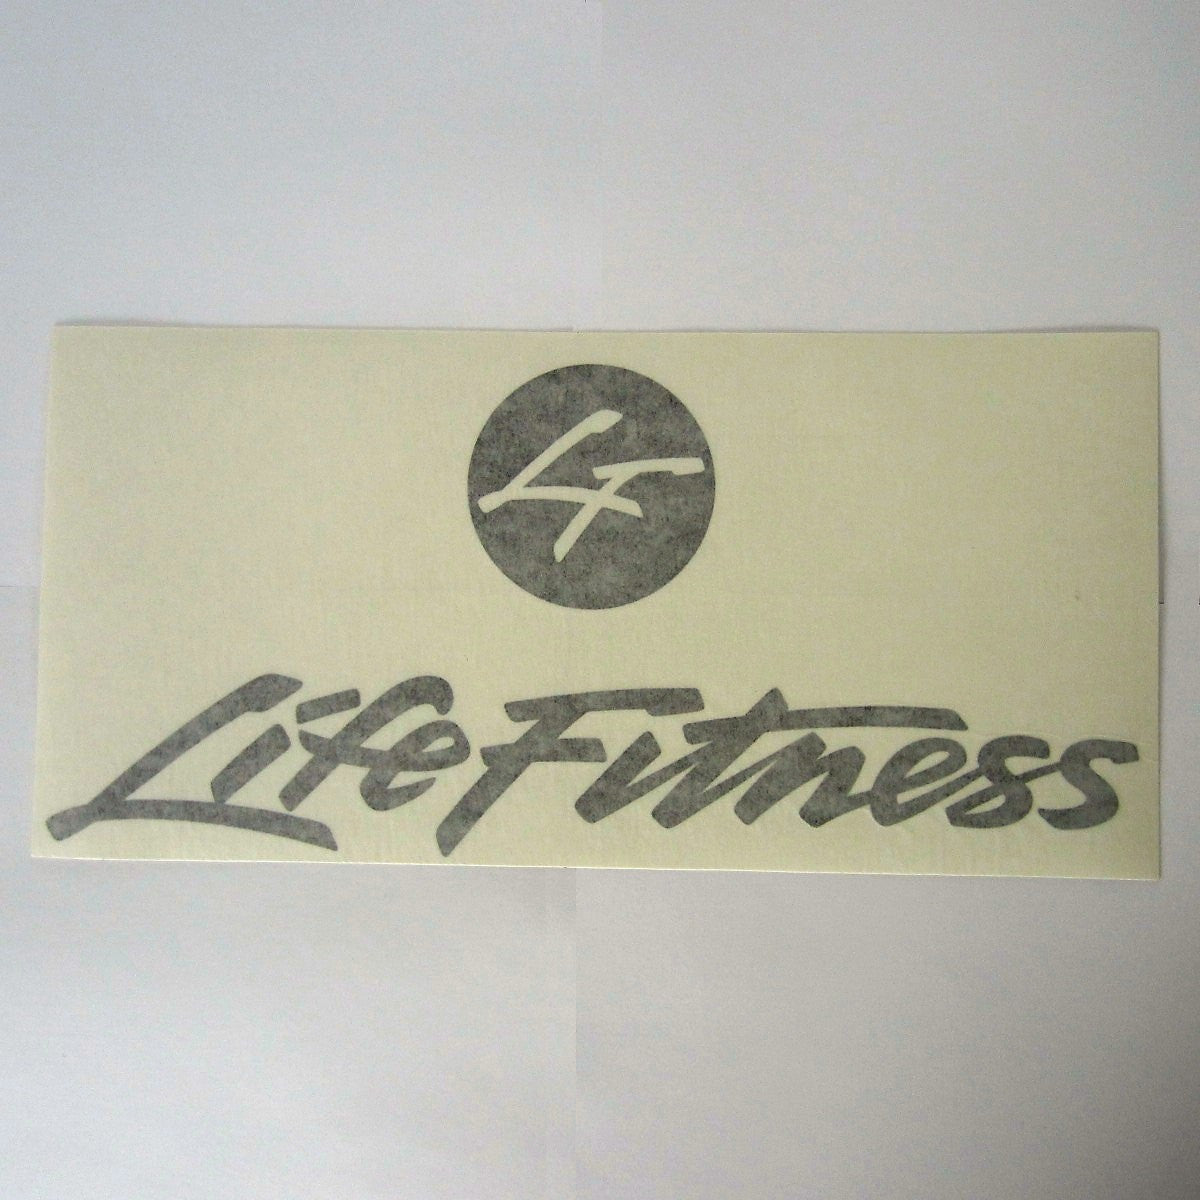 "Life Fitness Shroud Decal 13"" x 6"""